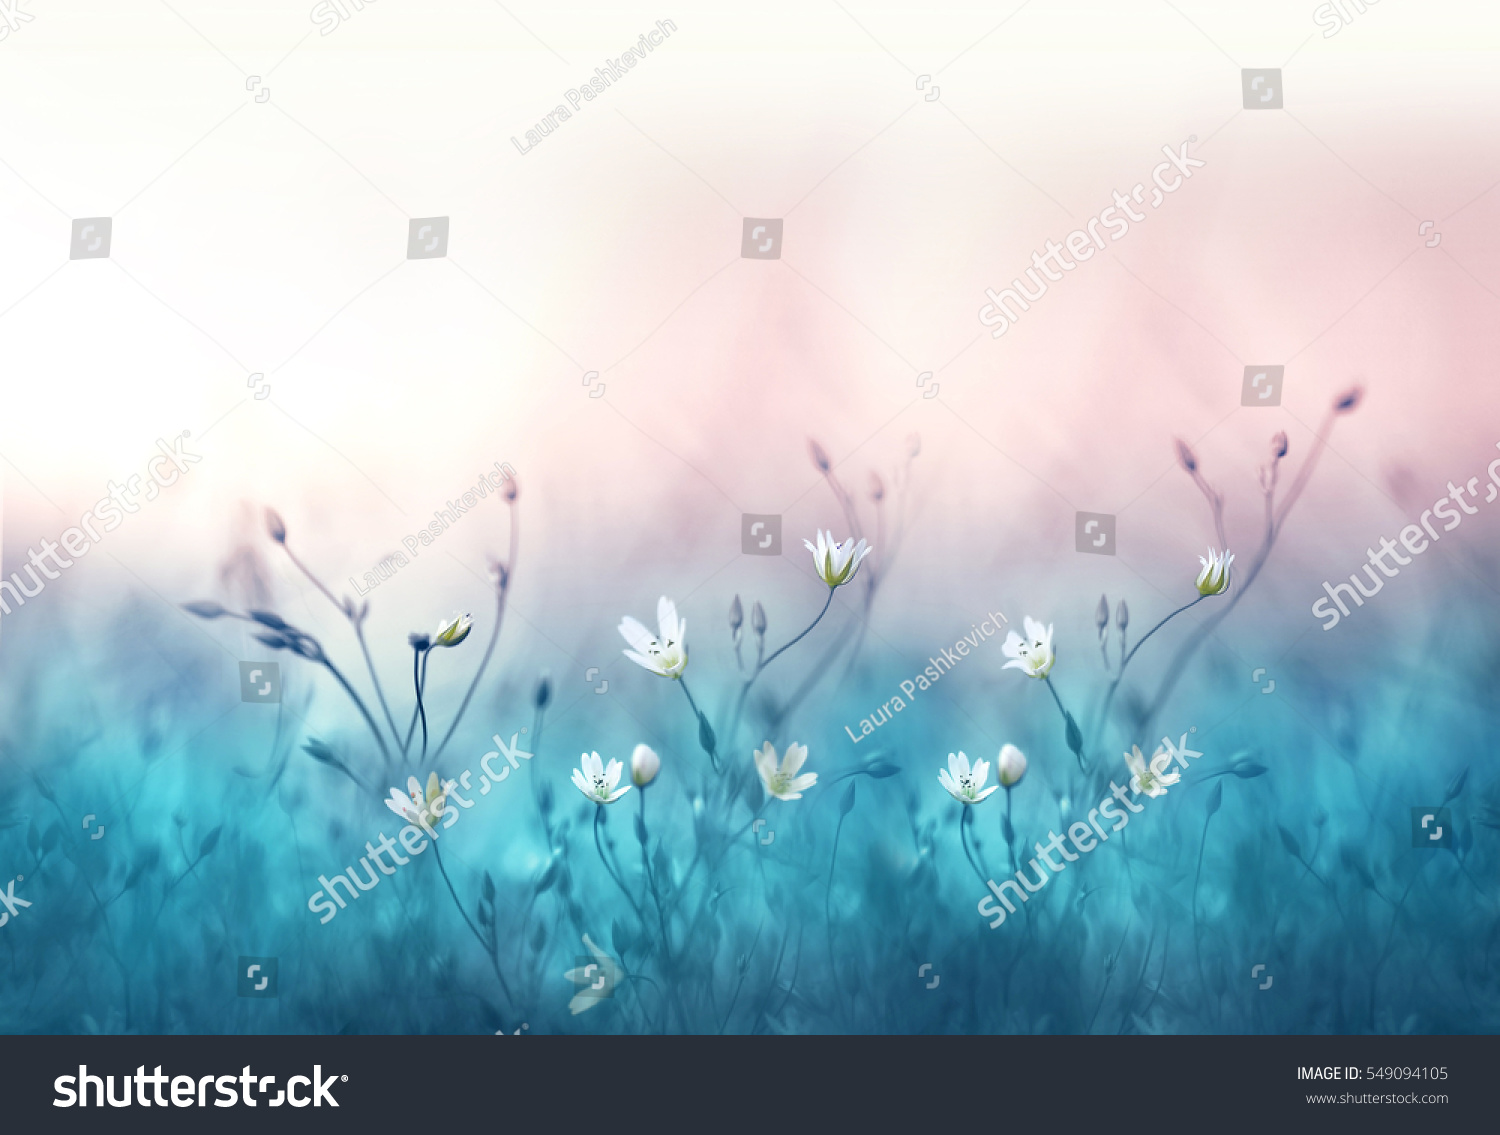 Similar images stock photos vectors of small white flowers on similar images to small white flowers on a toned on gentle soft blue and pink background outdoors close up macro spring summer border template floral ba mightylinksfo